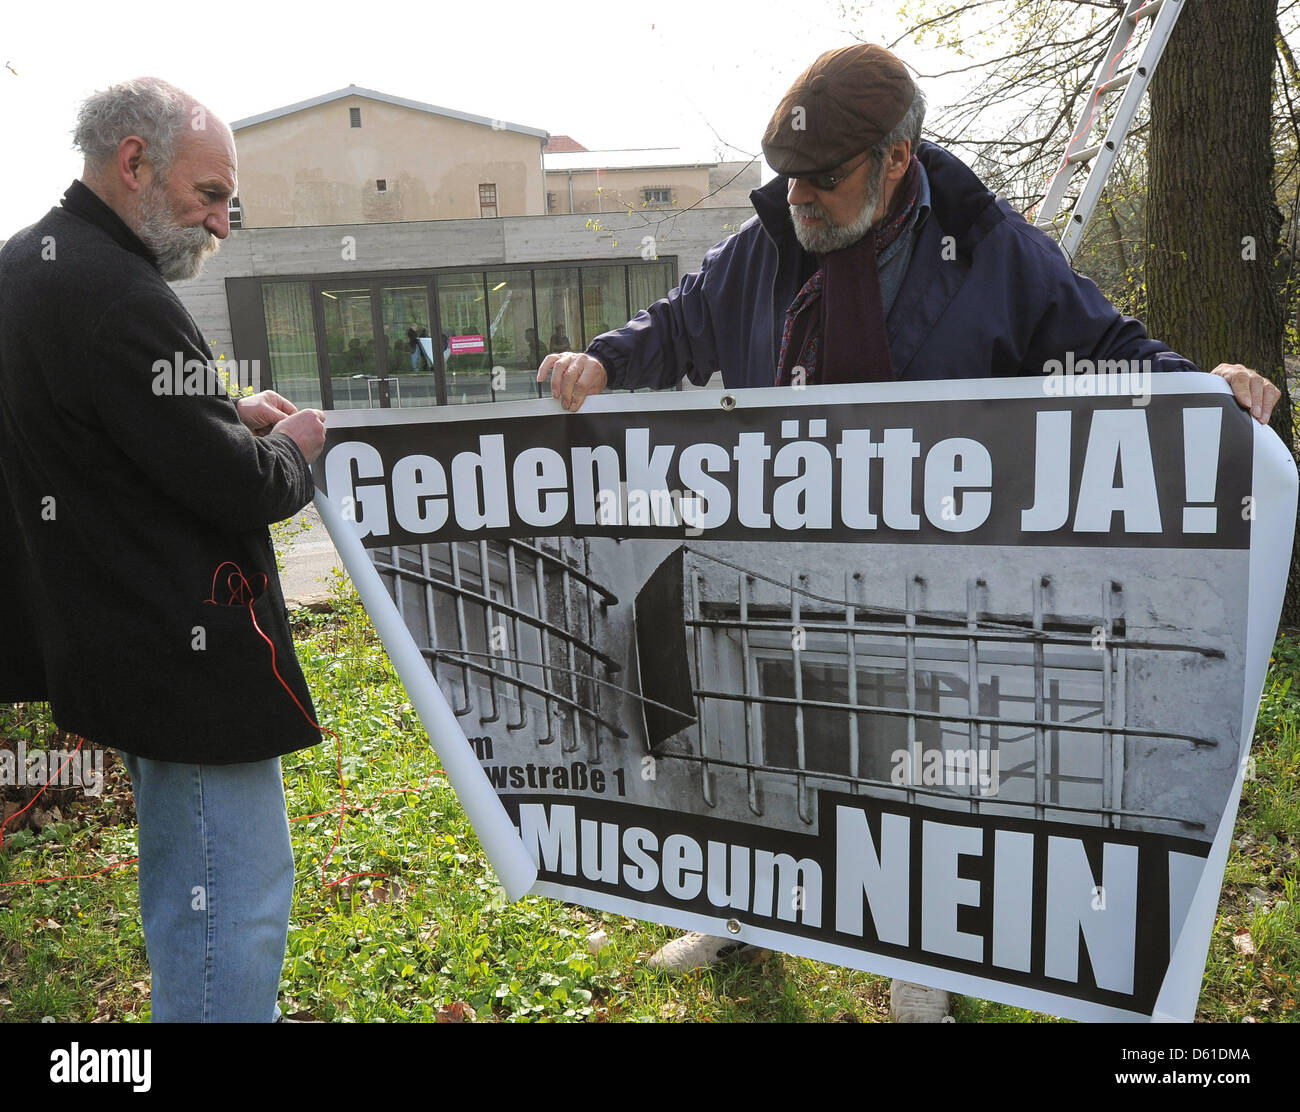 Dirk Jungnickel (L) and Bob Bahra put up a protest poster in front of the memorial site Leistikowstraße in - Stock Image